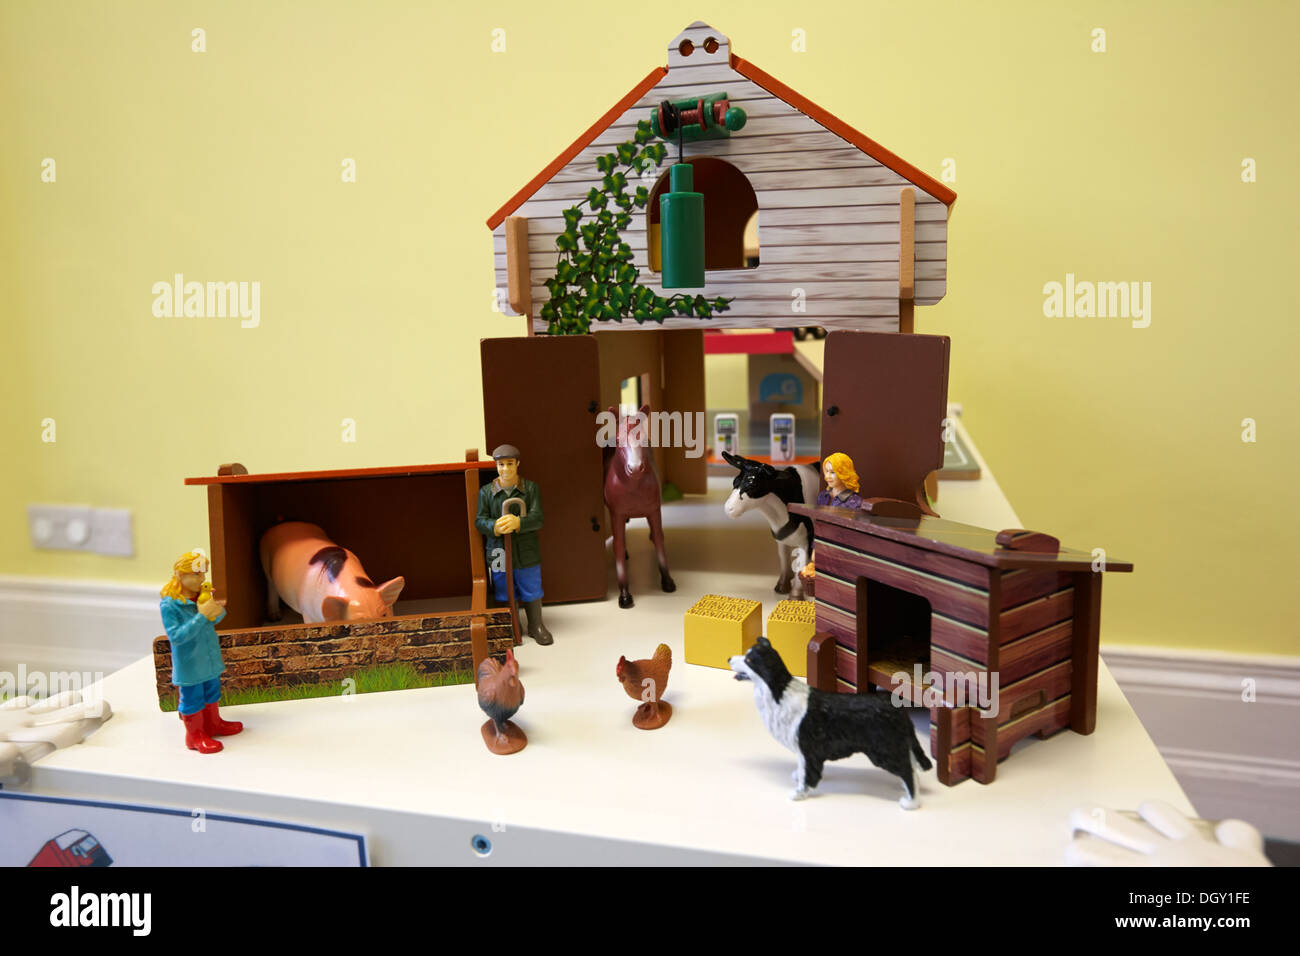 Early Learning Toy Stock Photos & Early Learning Toy Stock Images ...